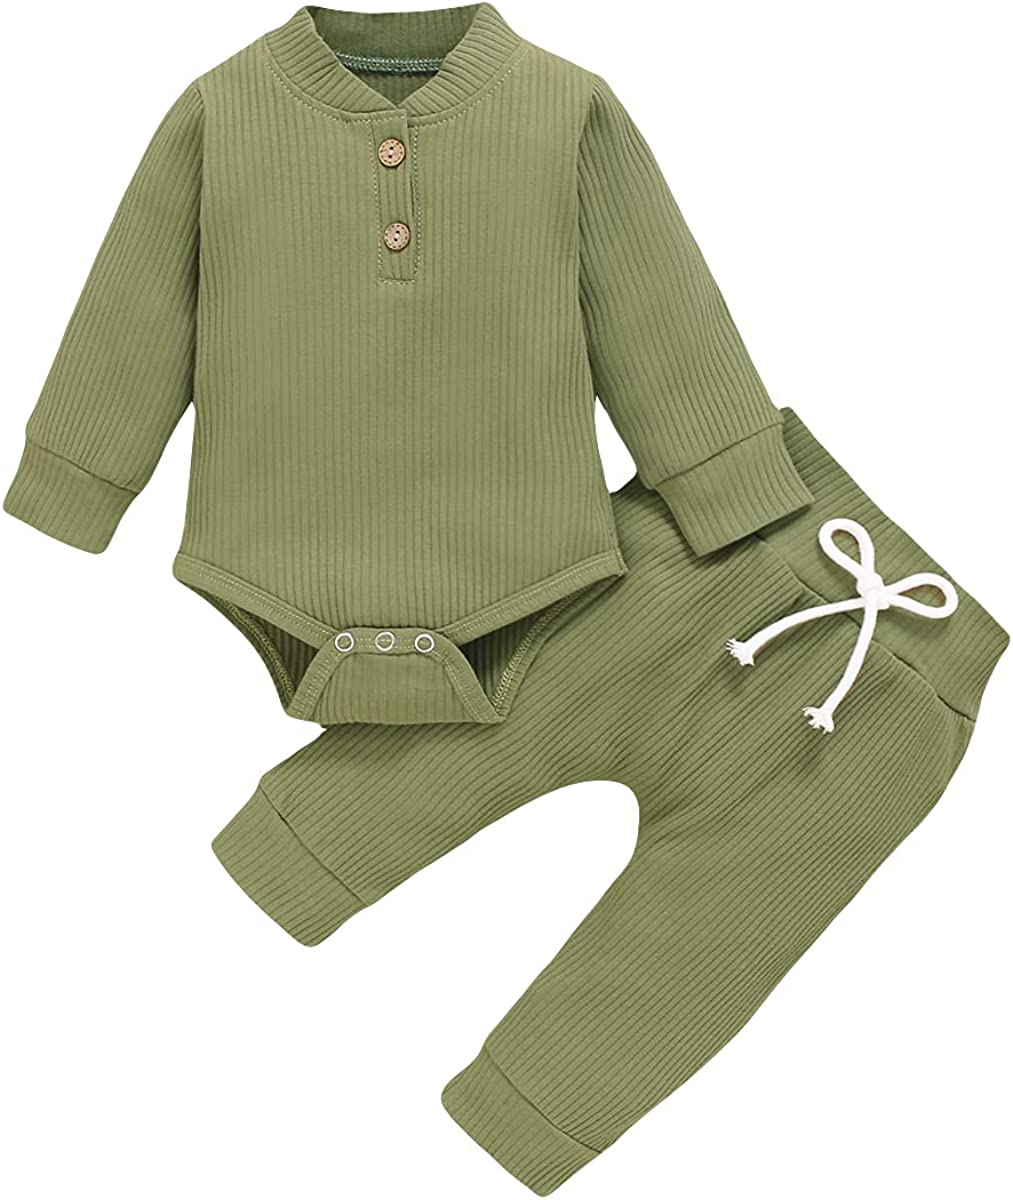 Newborn Infant Baby Boy Girl Solid Color Outfit Button Ribbed Cotton Long Sleeve Romper Autumn Winter Pants Set